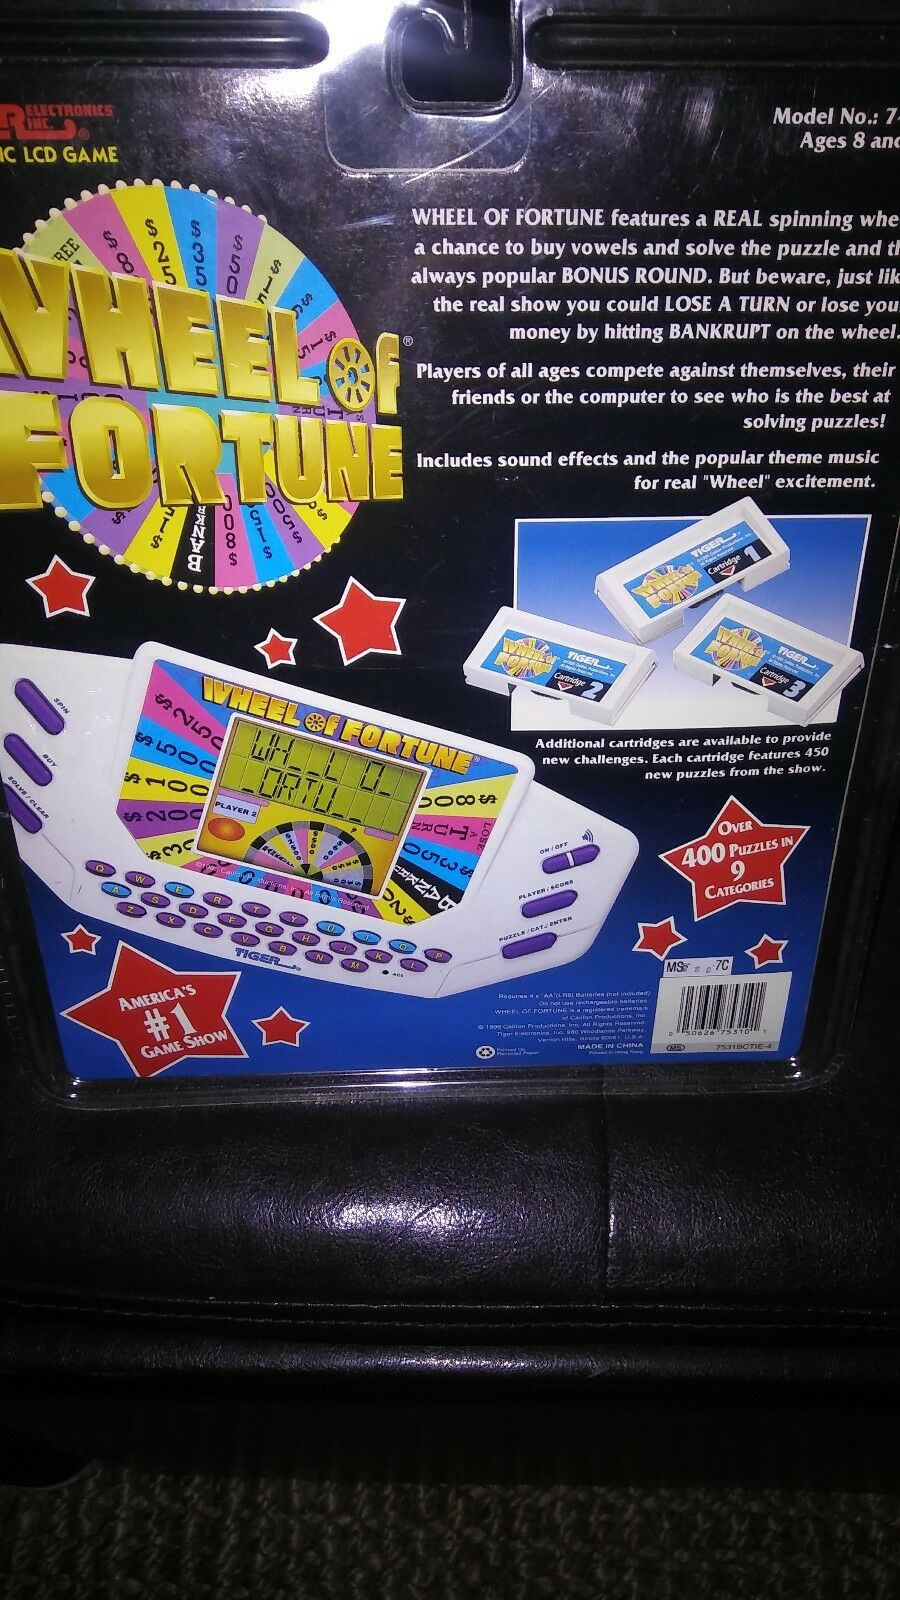 1996 wheel of fortune hand held game